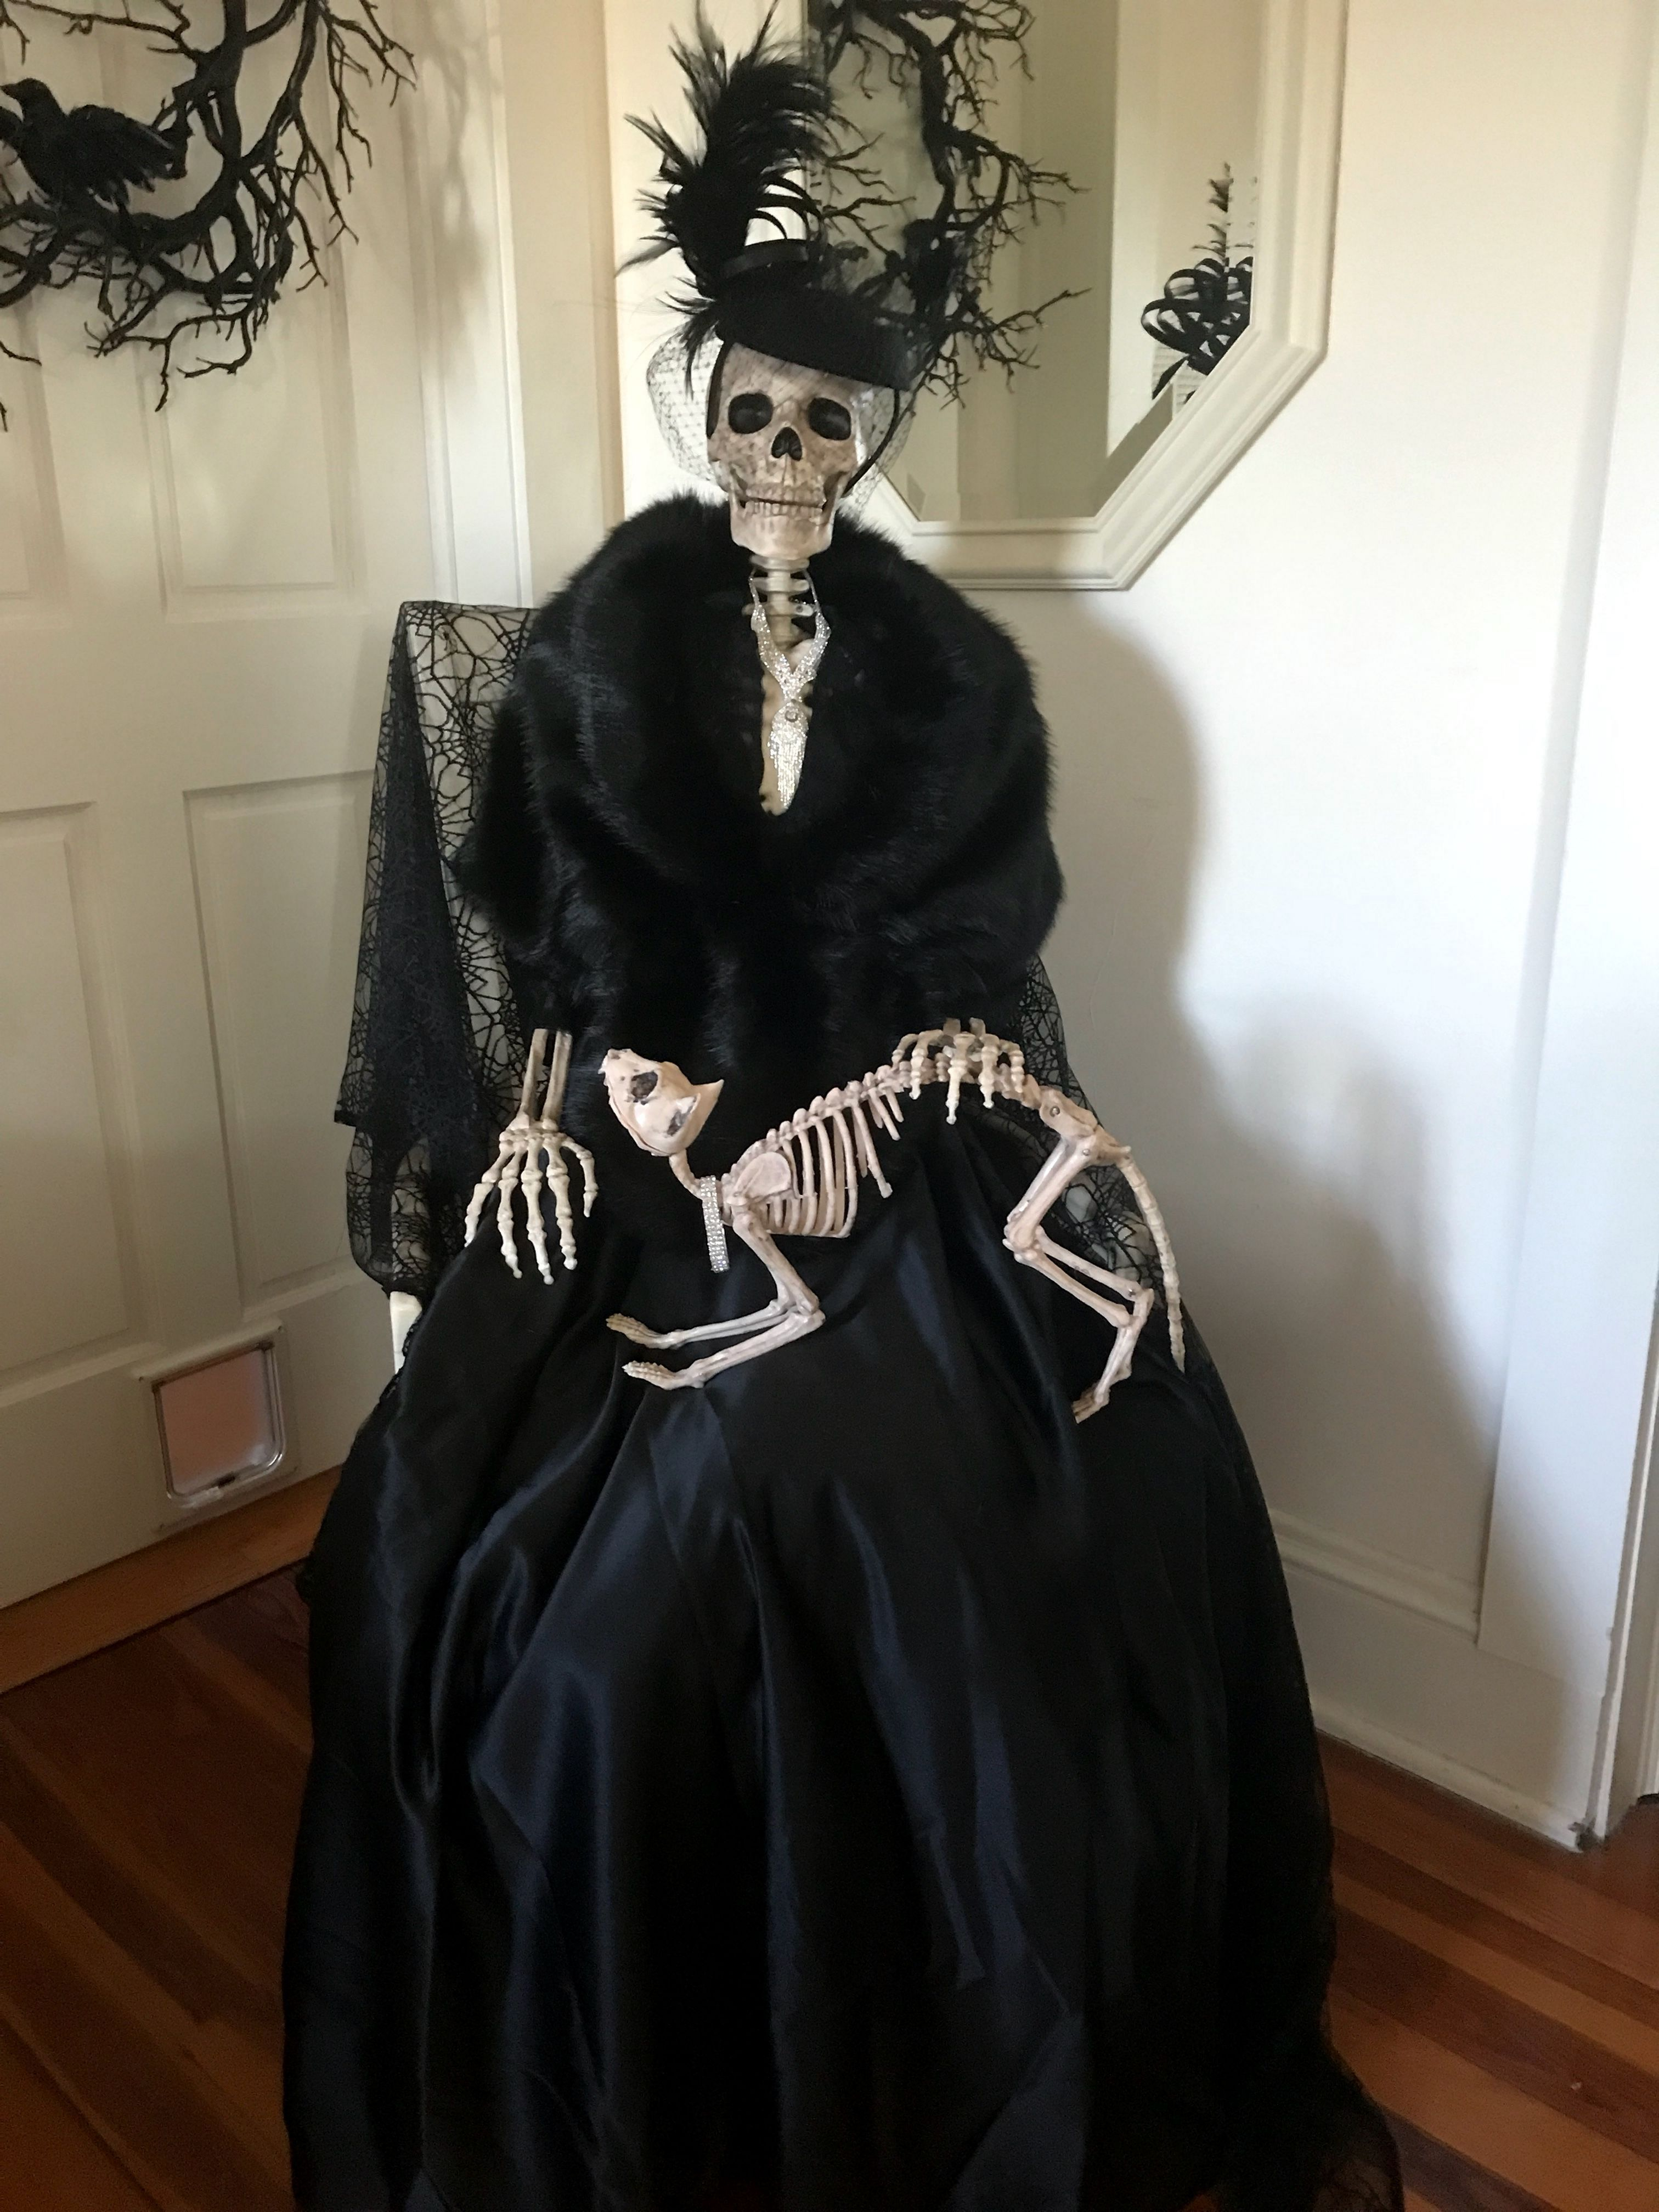 Breathtaking 25 Awesome Vintage Halloween Decoration Ideas On A Budget Https Wah Vintage Halloween Decorations Halloween Outdoor Decorations Scary Halloween